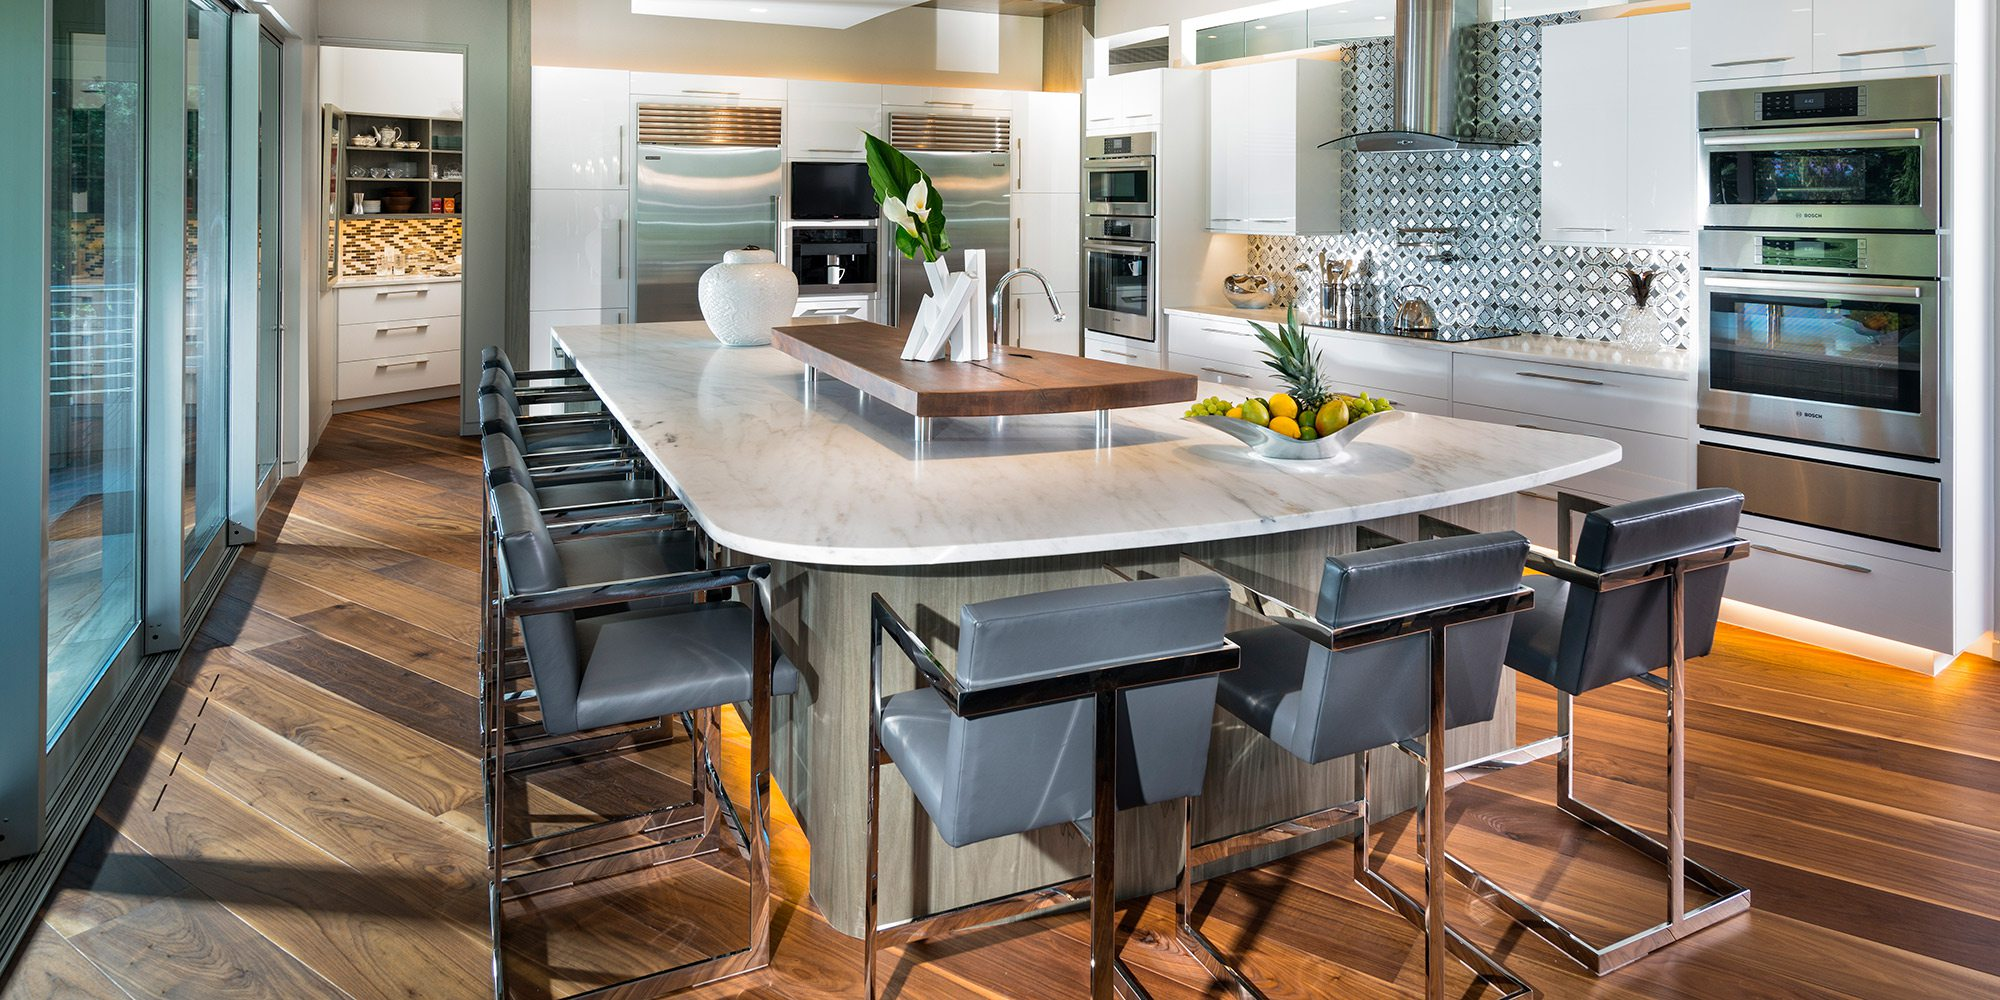 417 Home Design Awards 2019 Winner of Most Creative Use of Materials in a Kitchen by Obelisk Home Springfield MO